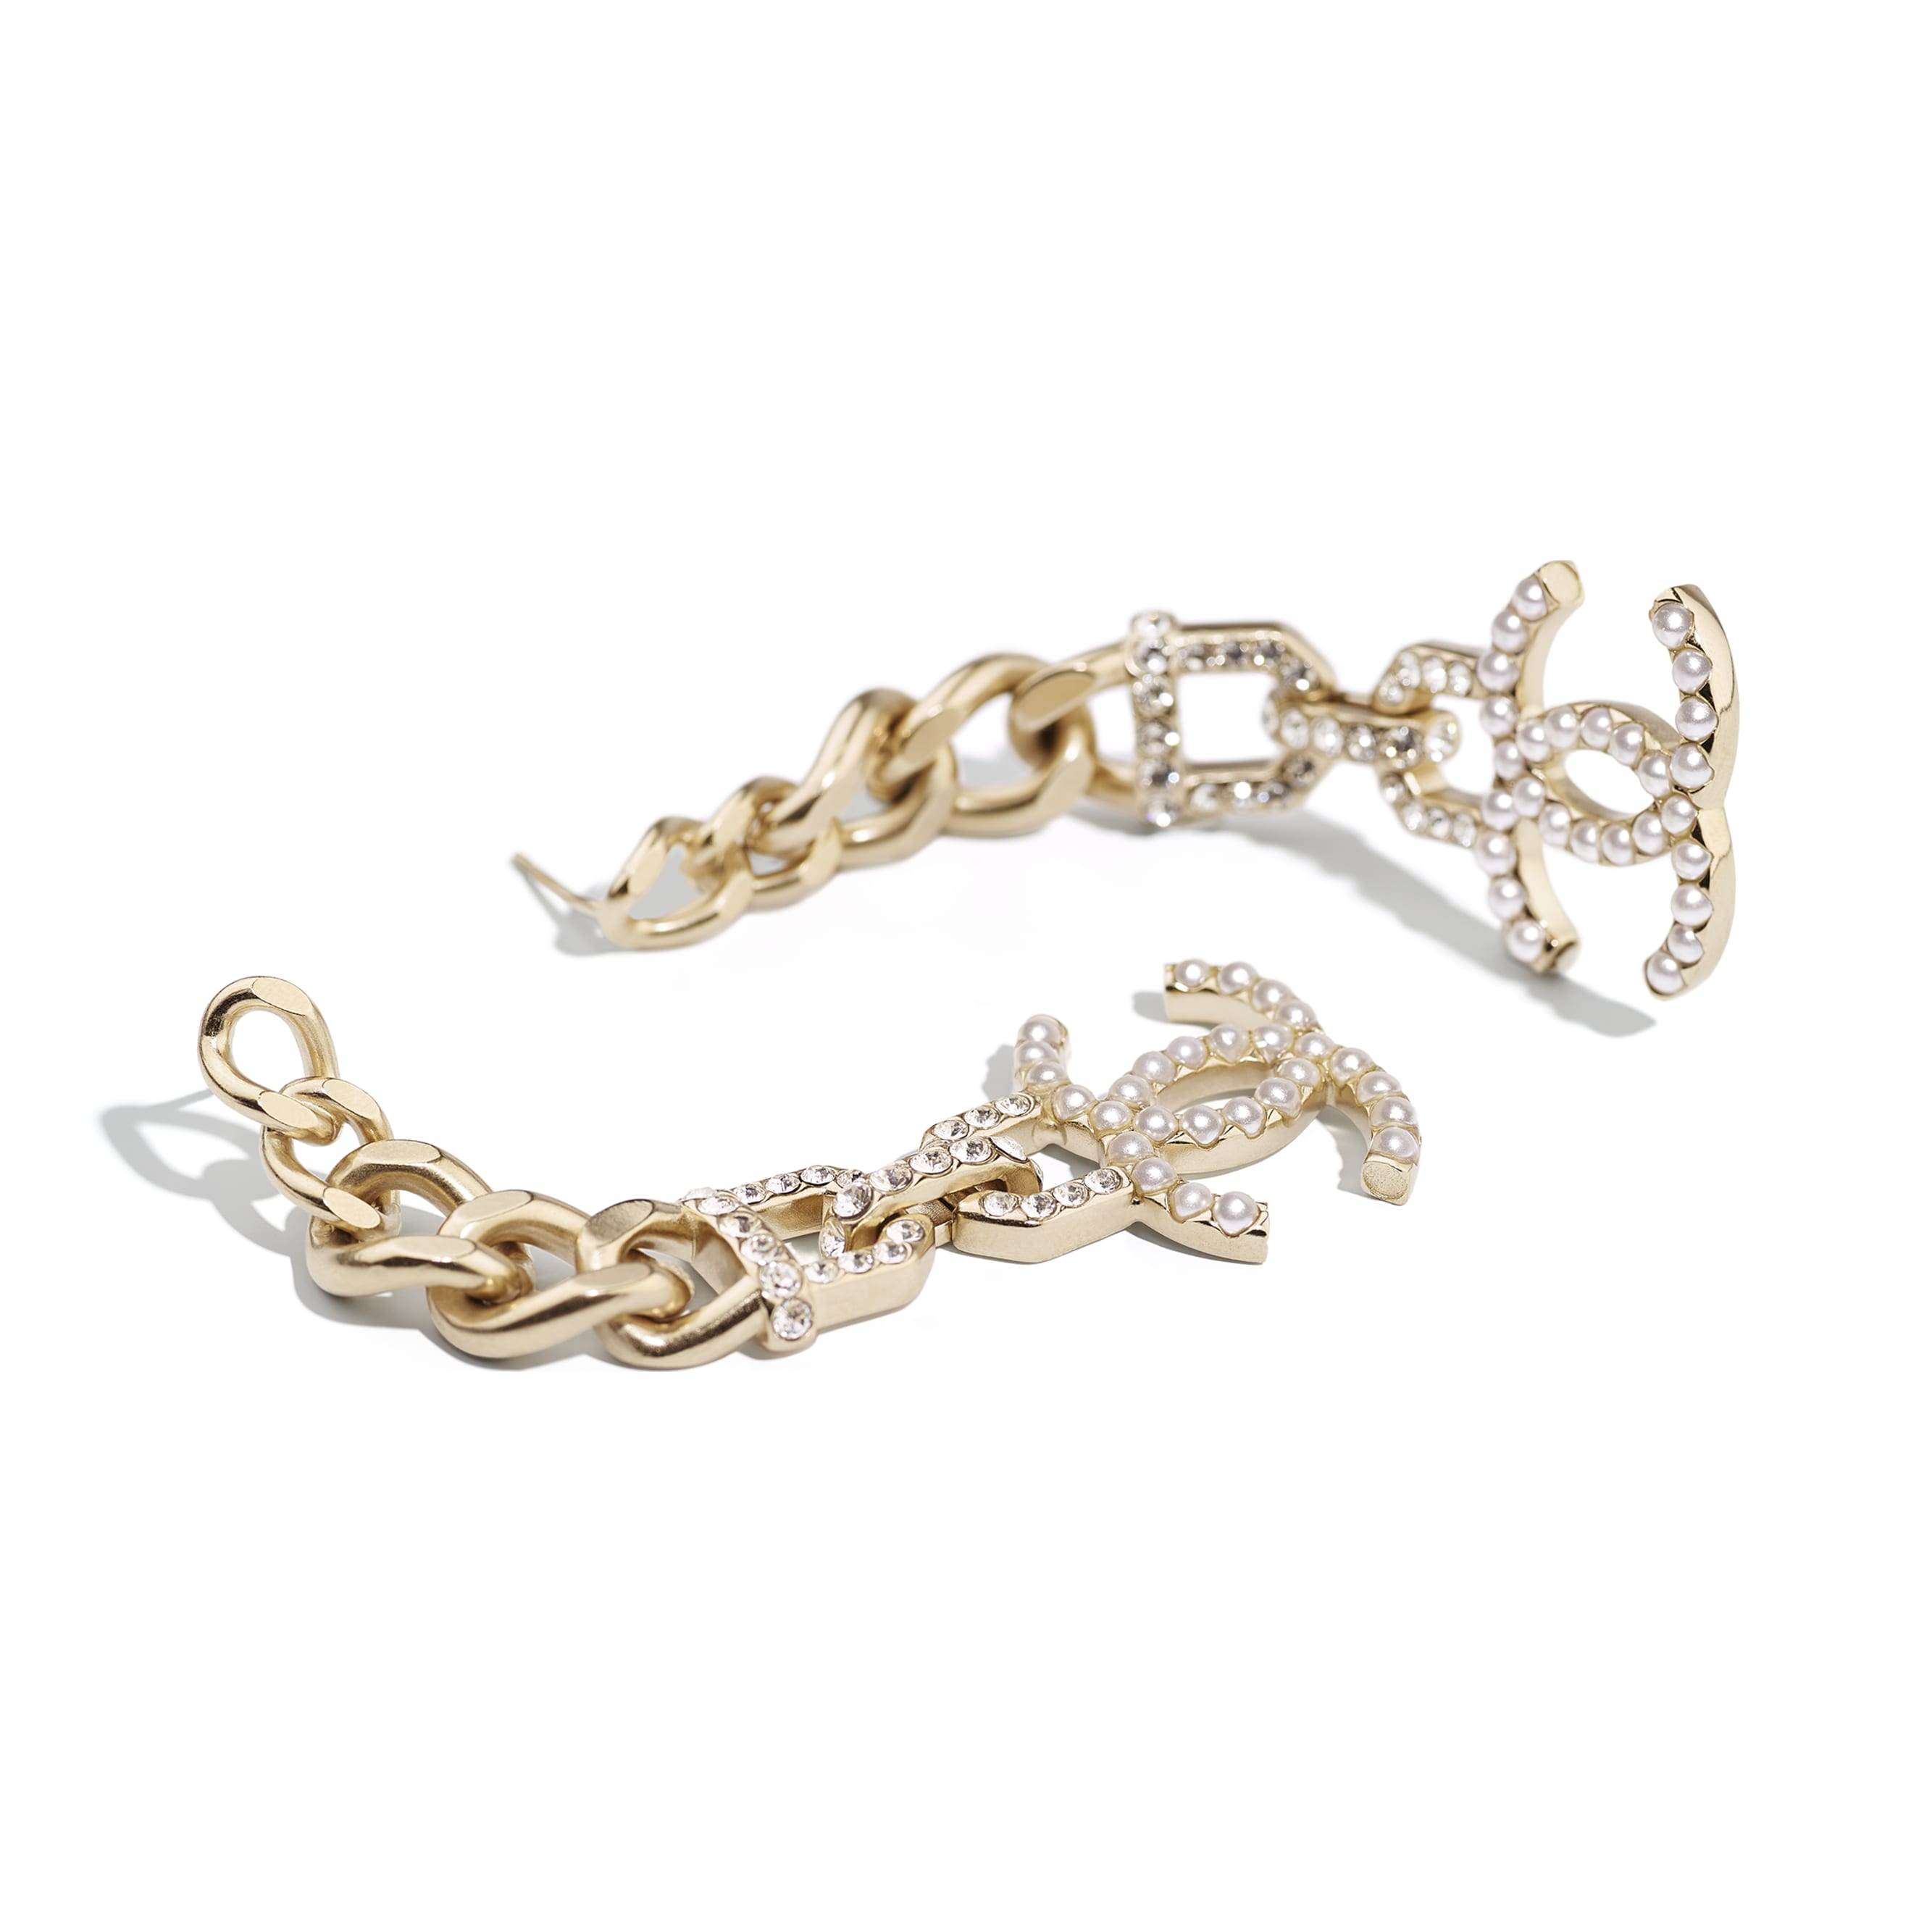 Earrings - Gold, Pearly White & Crystal - Metal, Imitation Pearls & Diamanté - CHANEL - Alternative view - see standard sized version